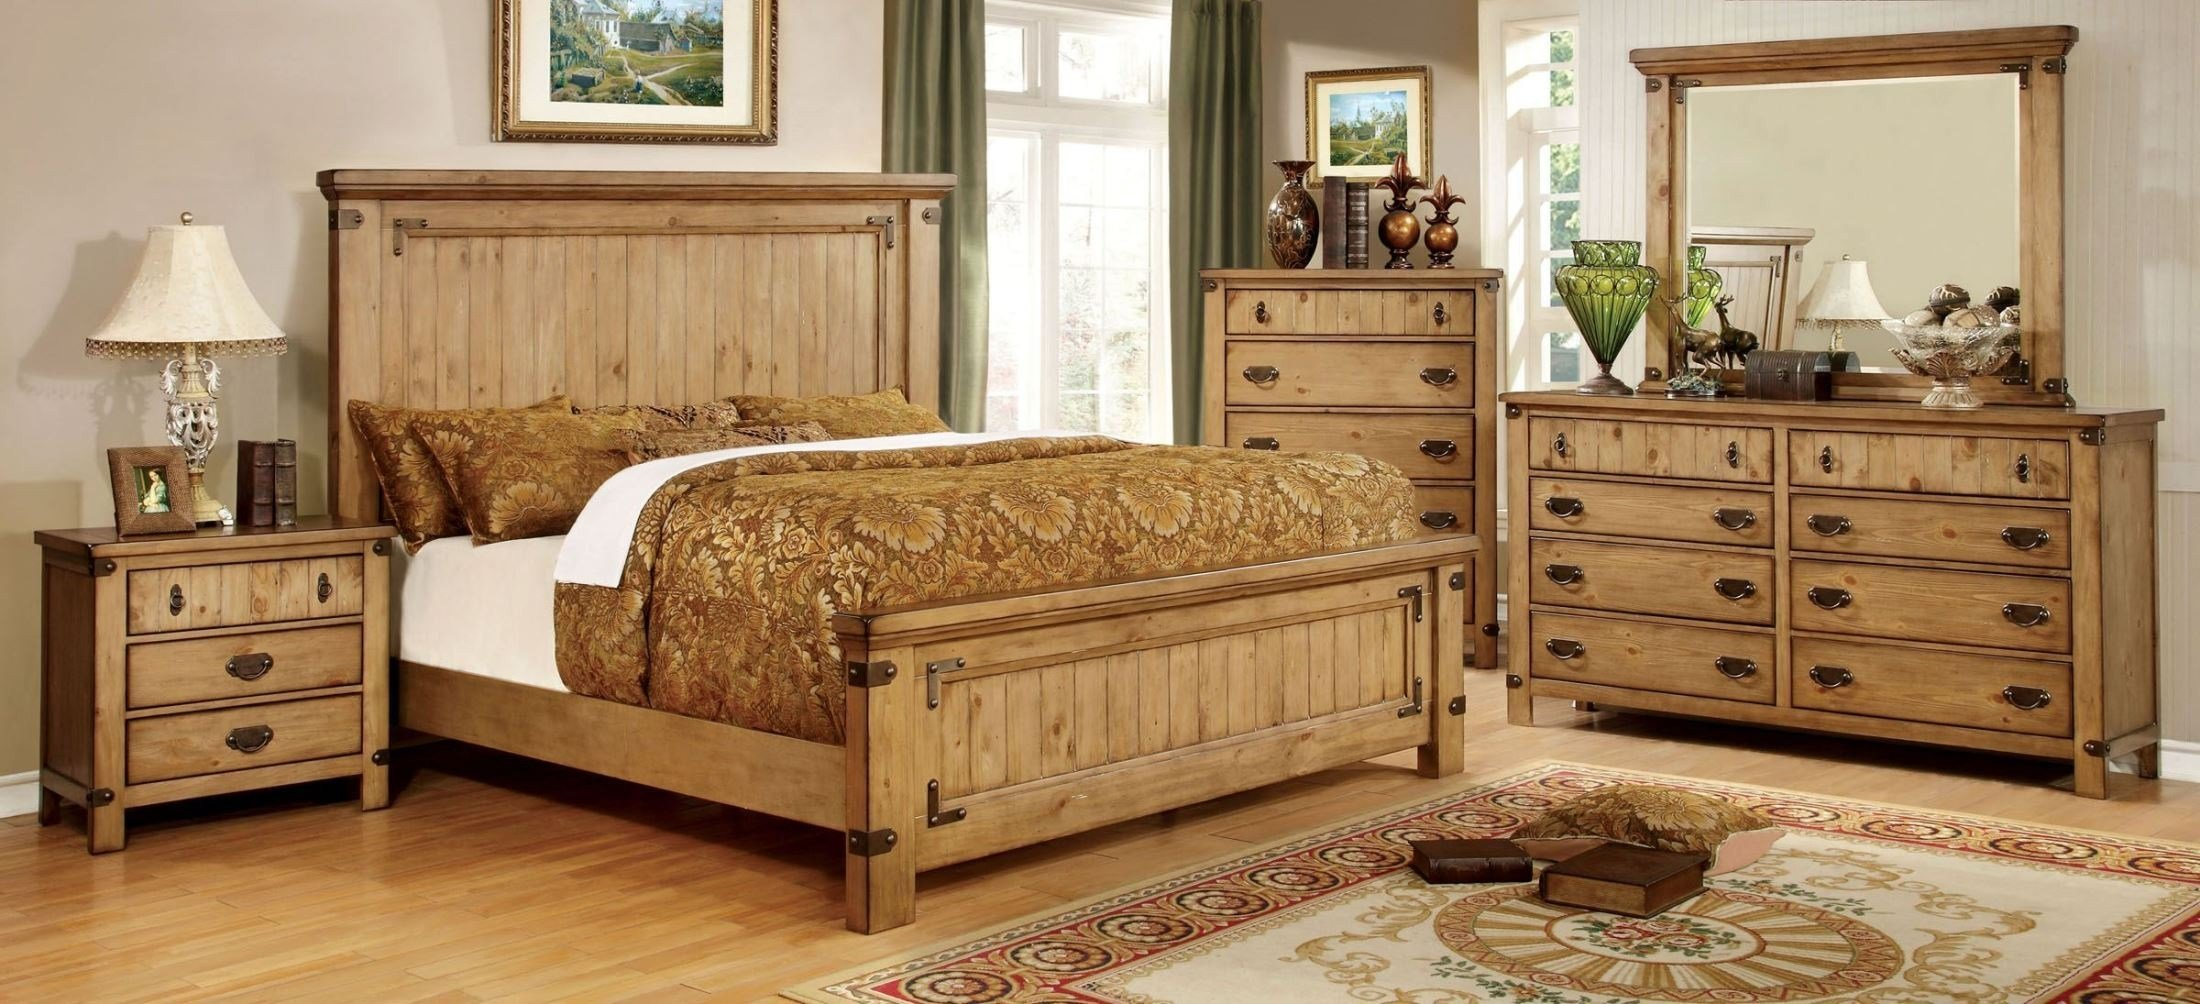 Best Pioneer Burnished Pine Bedroom Set From Furniture Of With Pictures